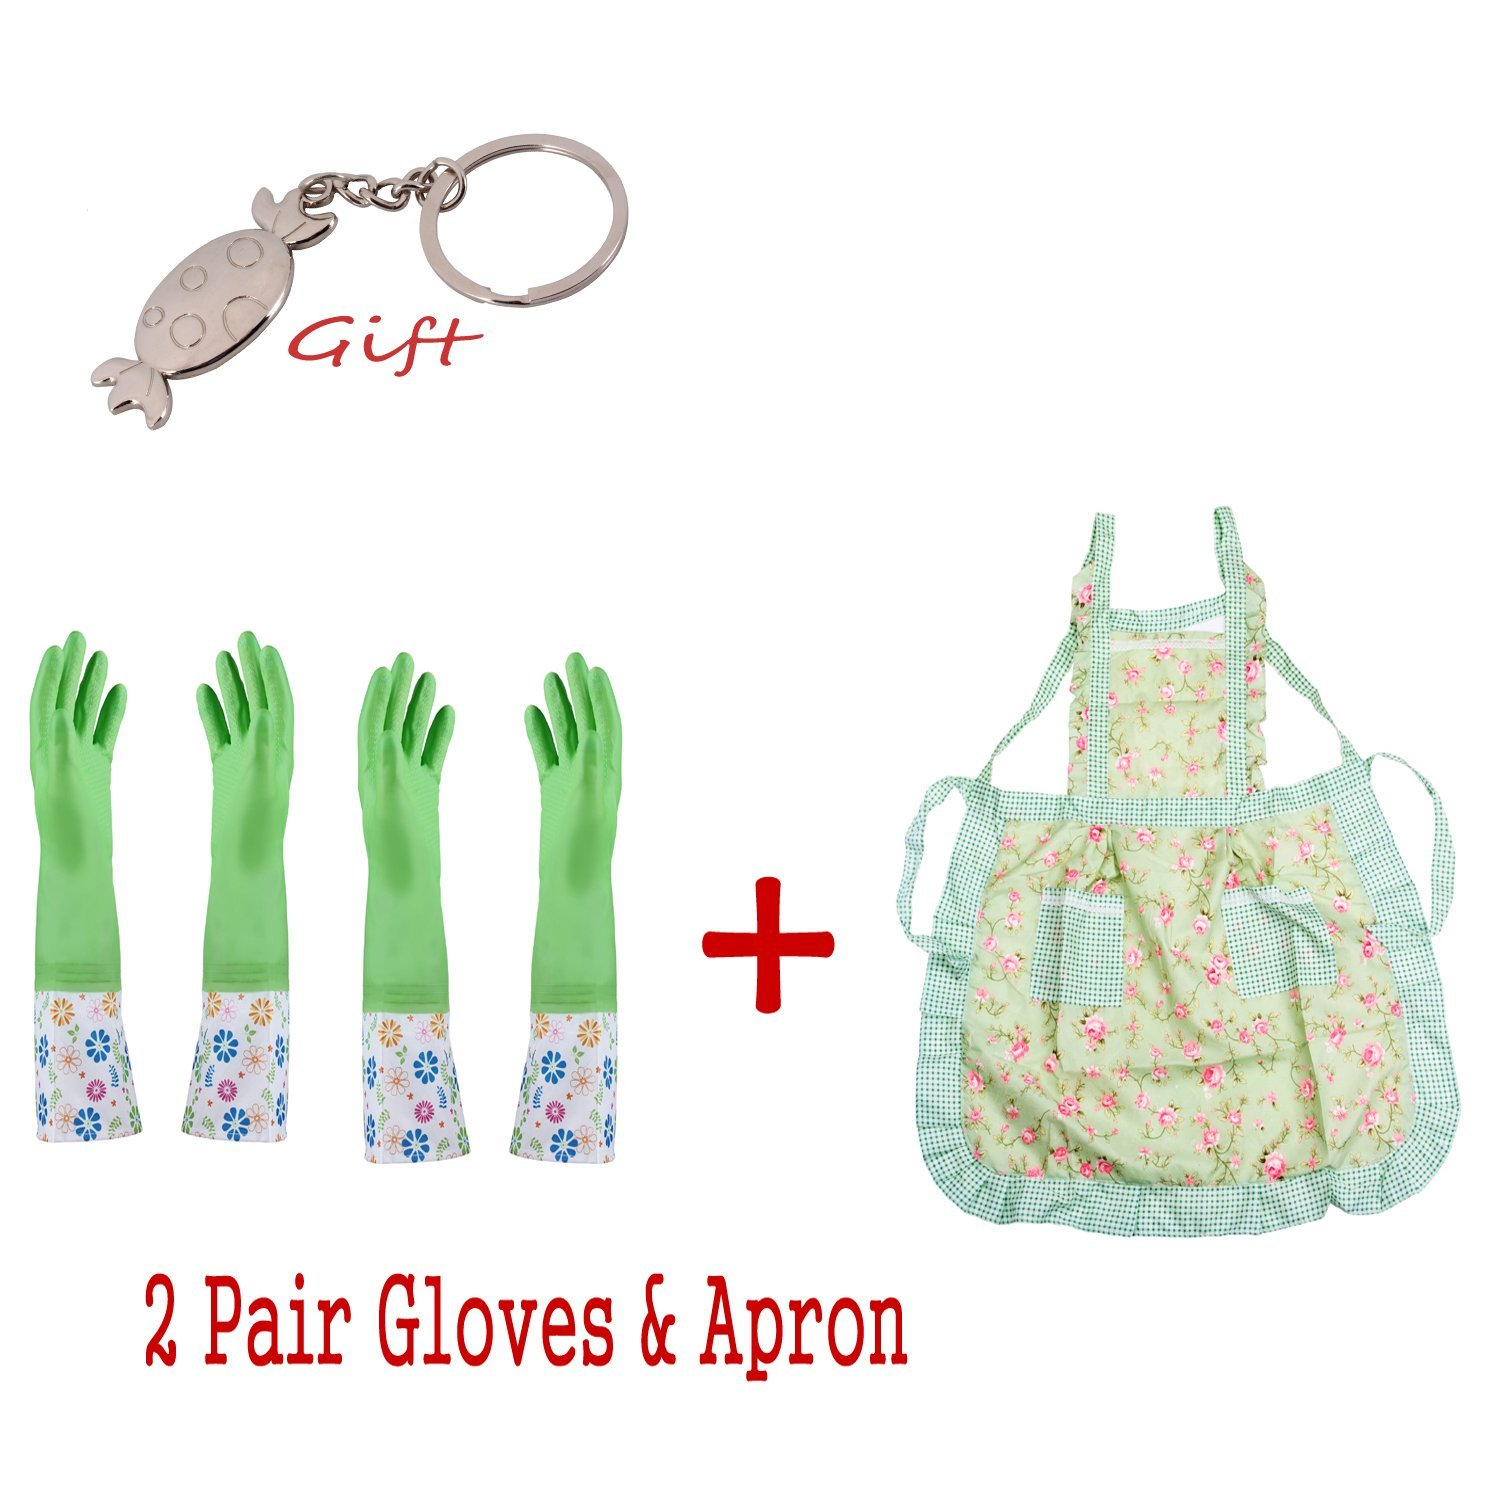 Long Sleeve Latex Kitchen Wash Dishes Dishwashing Gloves Cleaning Kit With Apron, Keep Warm Gloves&Thin Gloves&Apron 3 in 1 Household Gloves Cleaning Tools Accessories